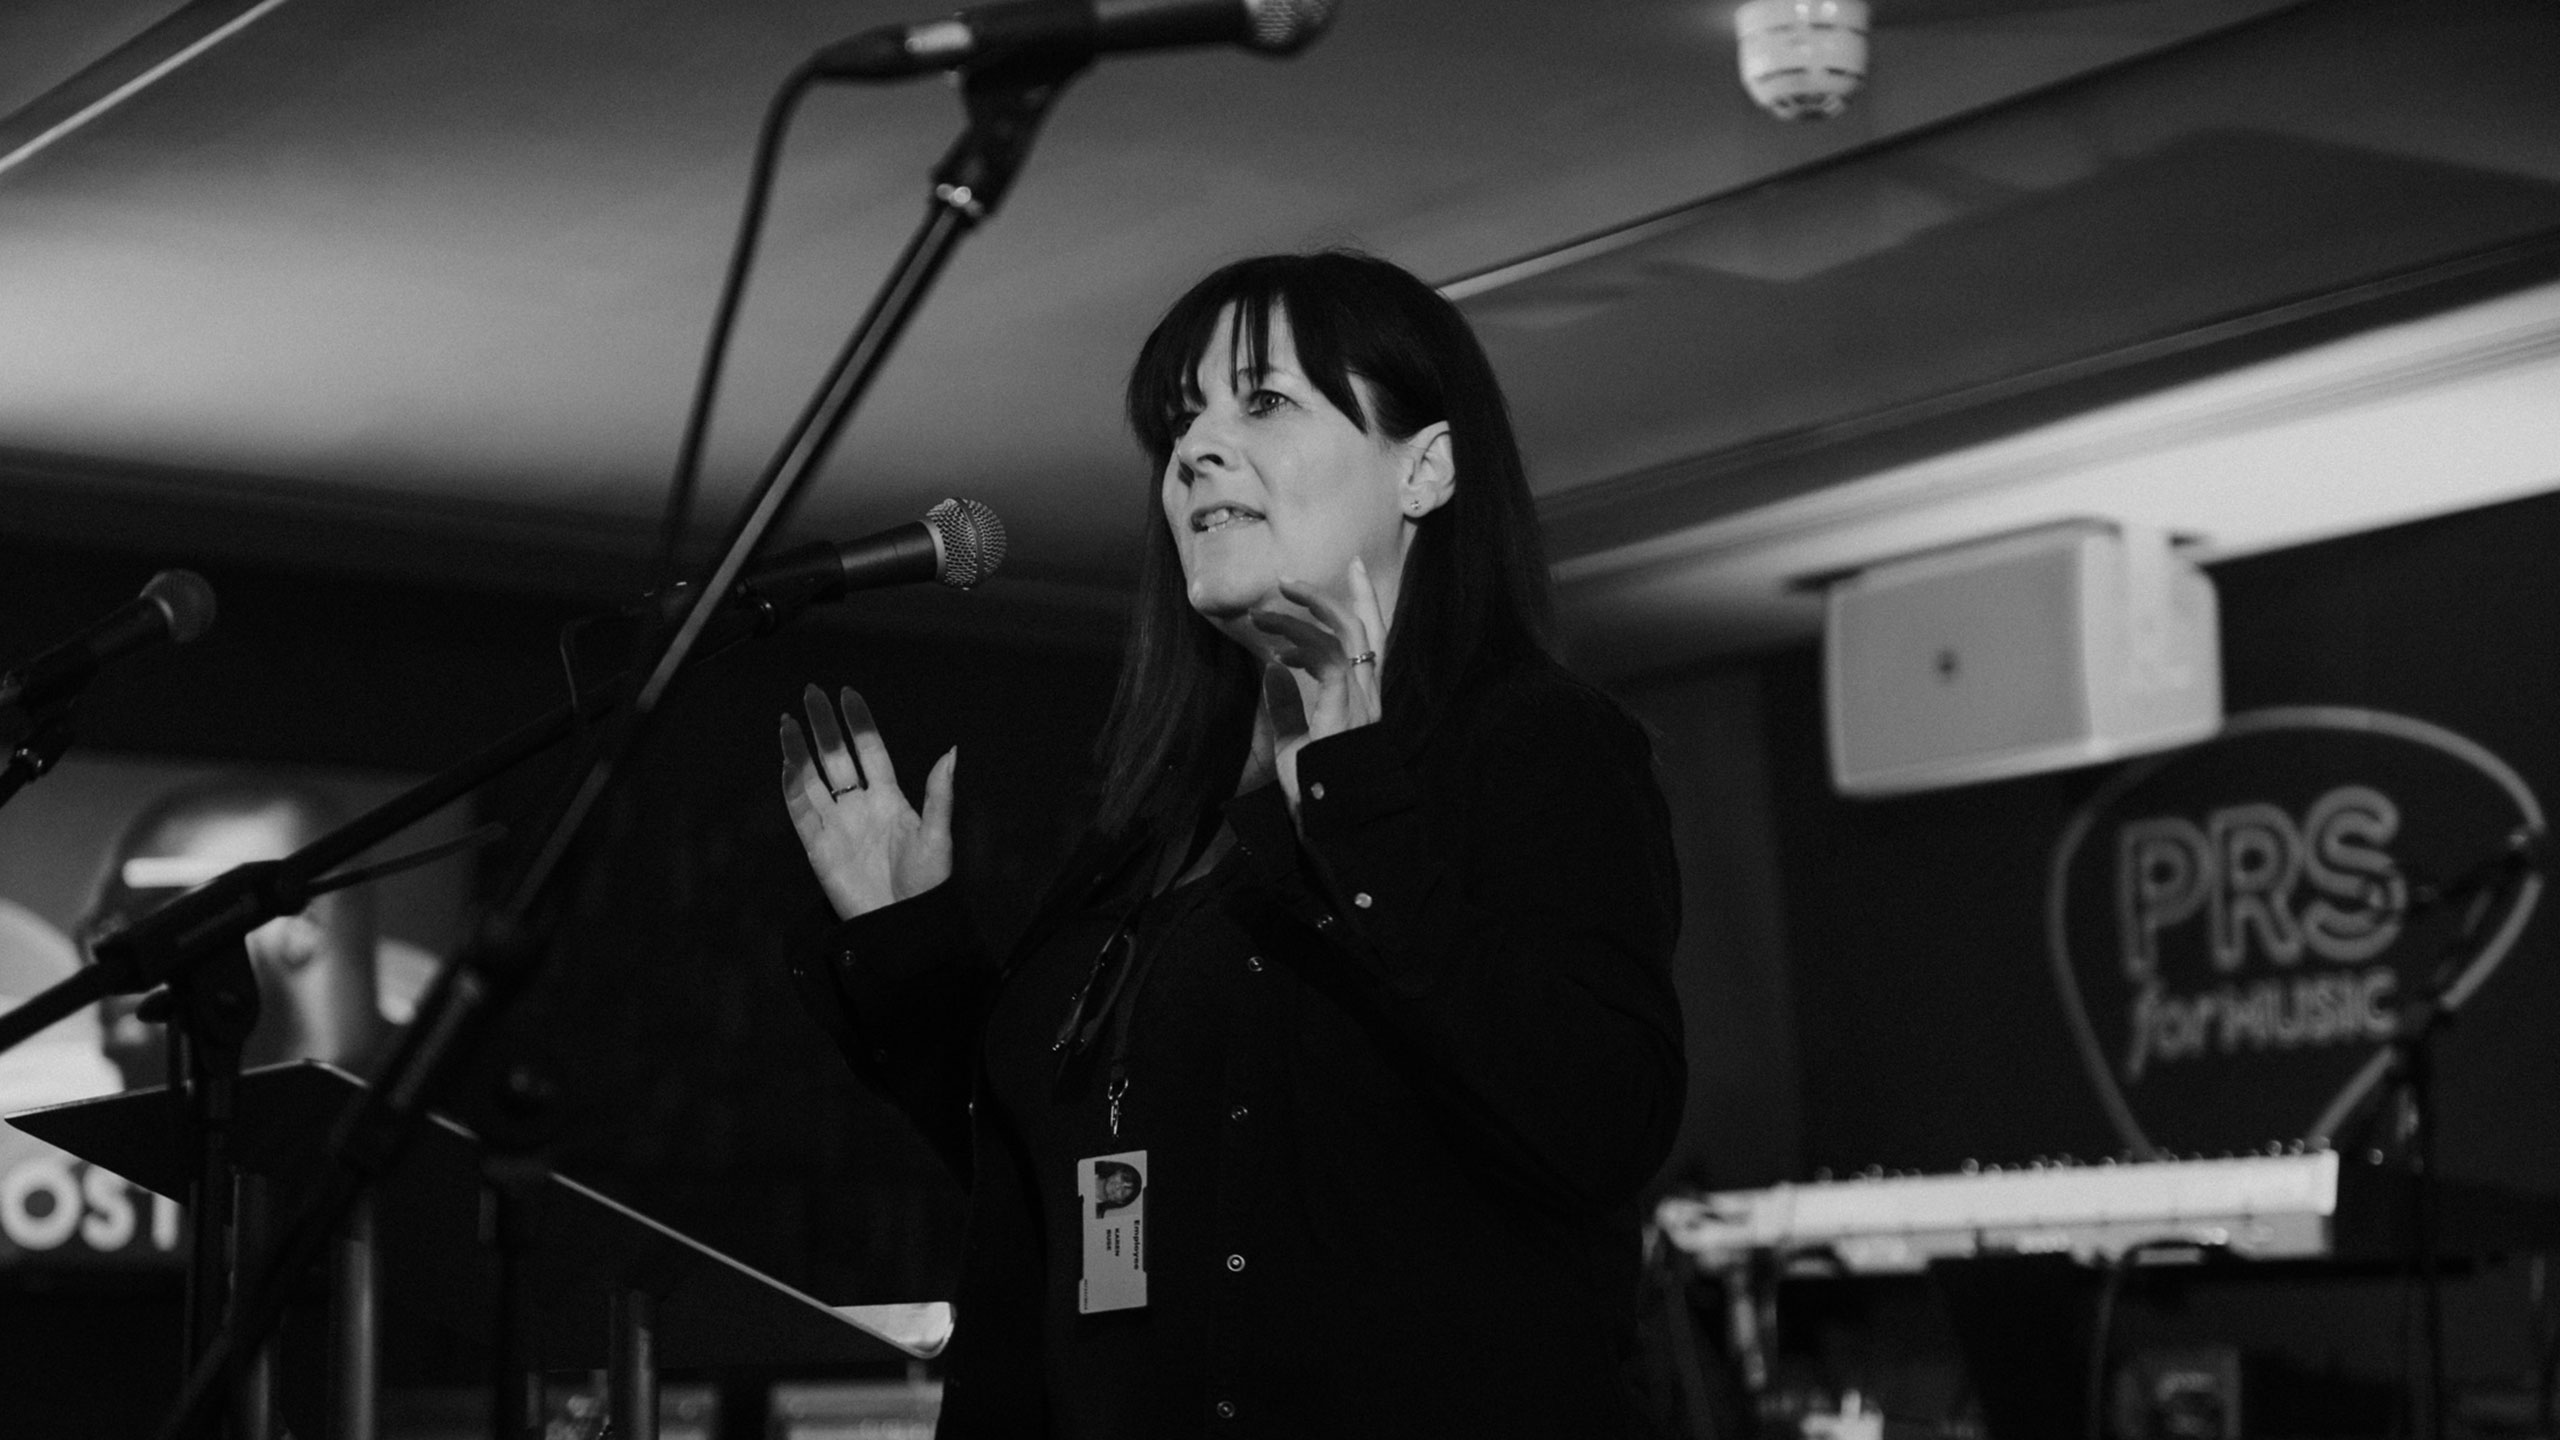 A black and white photo of Karen Buse, former executive director of membership and international, talking on stage at PRS for Music Presents